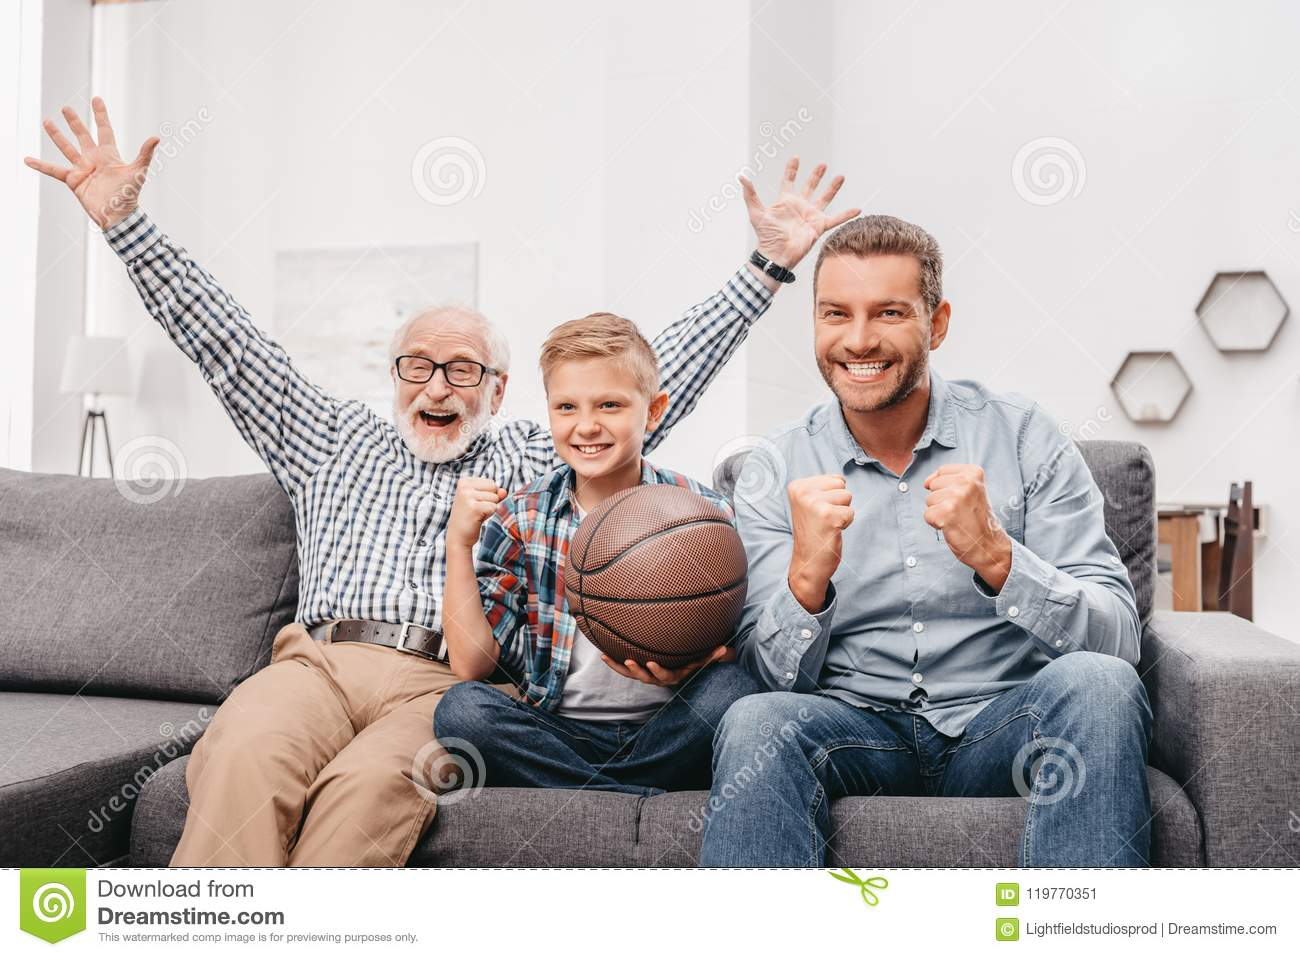 Little boy on couch with grandfather and father, cheering for a basketball game and holding a